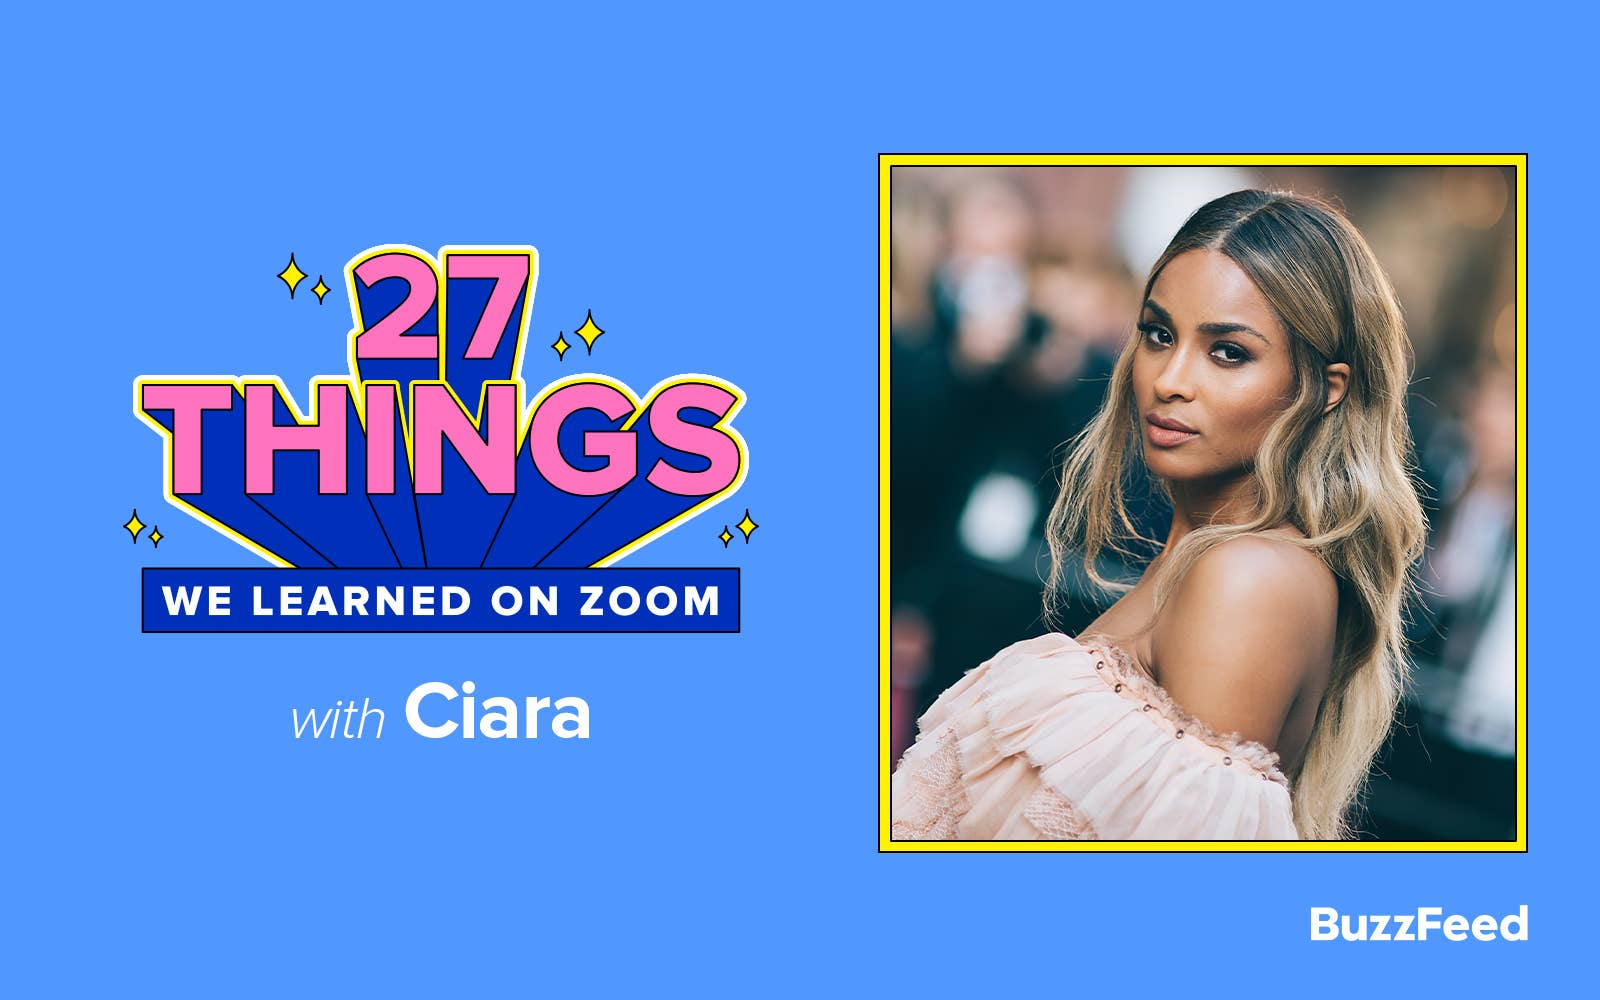 27 Things We Learned on Zoom with Ciara